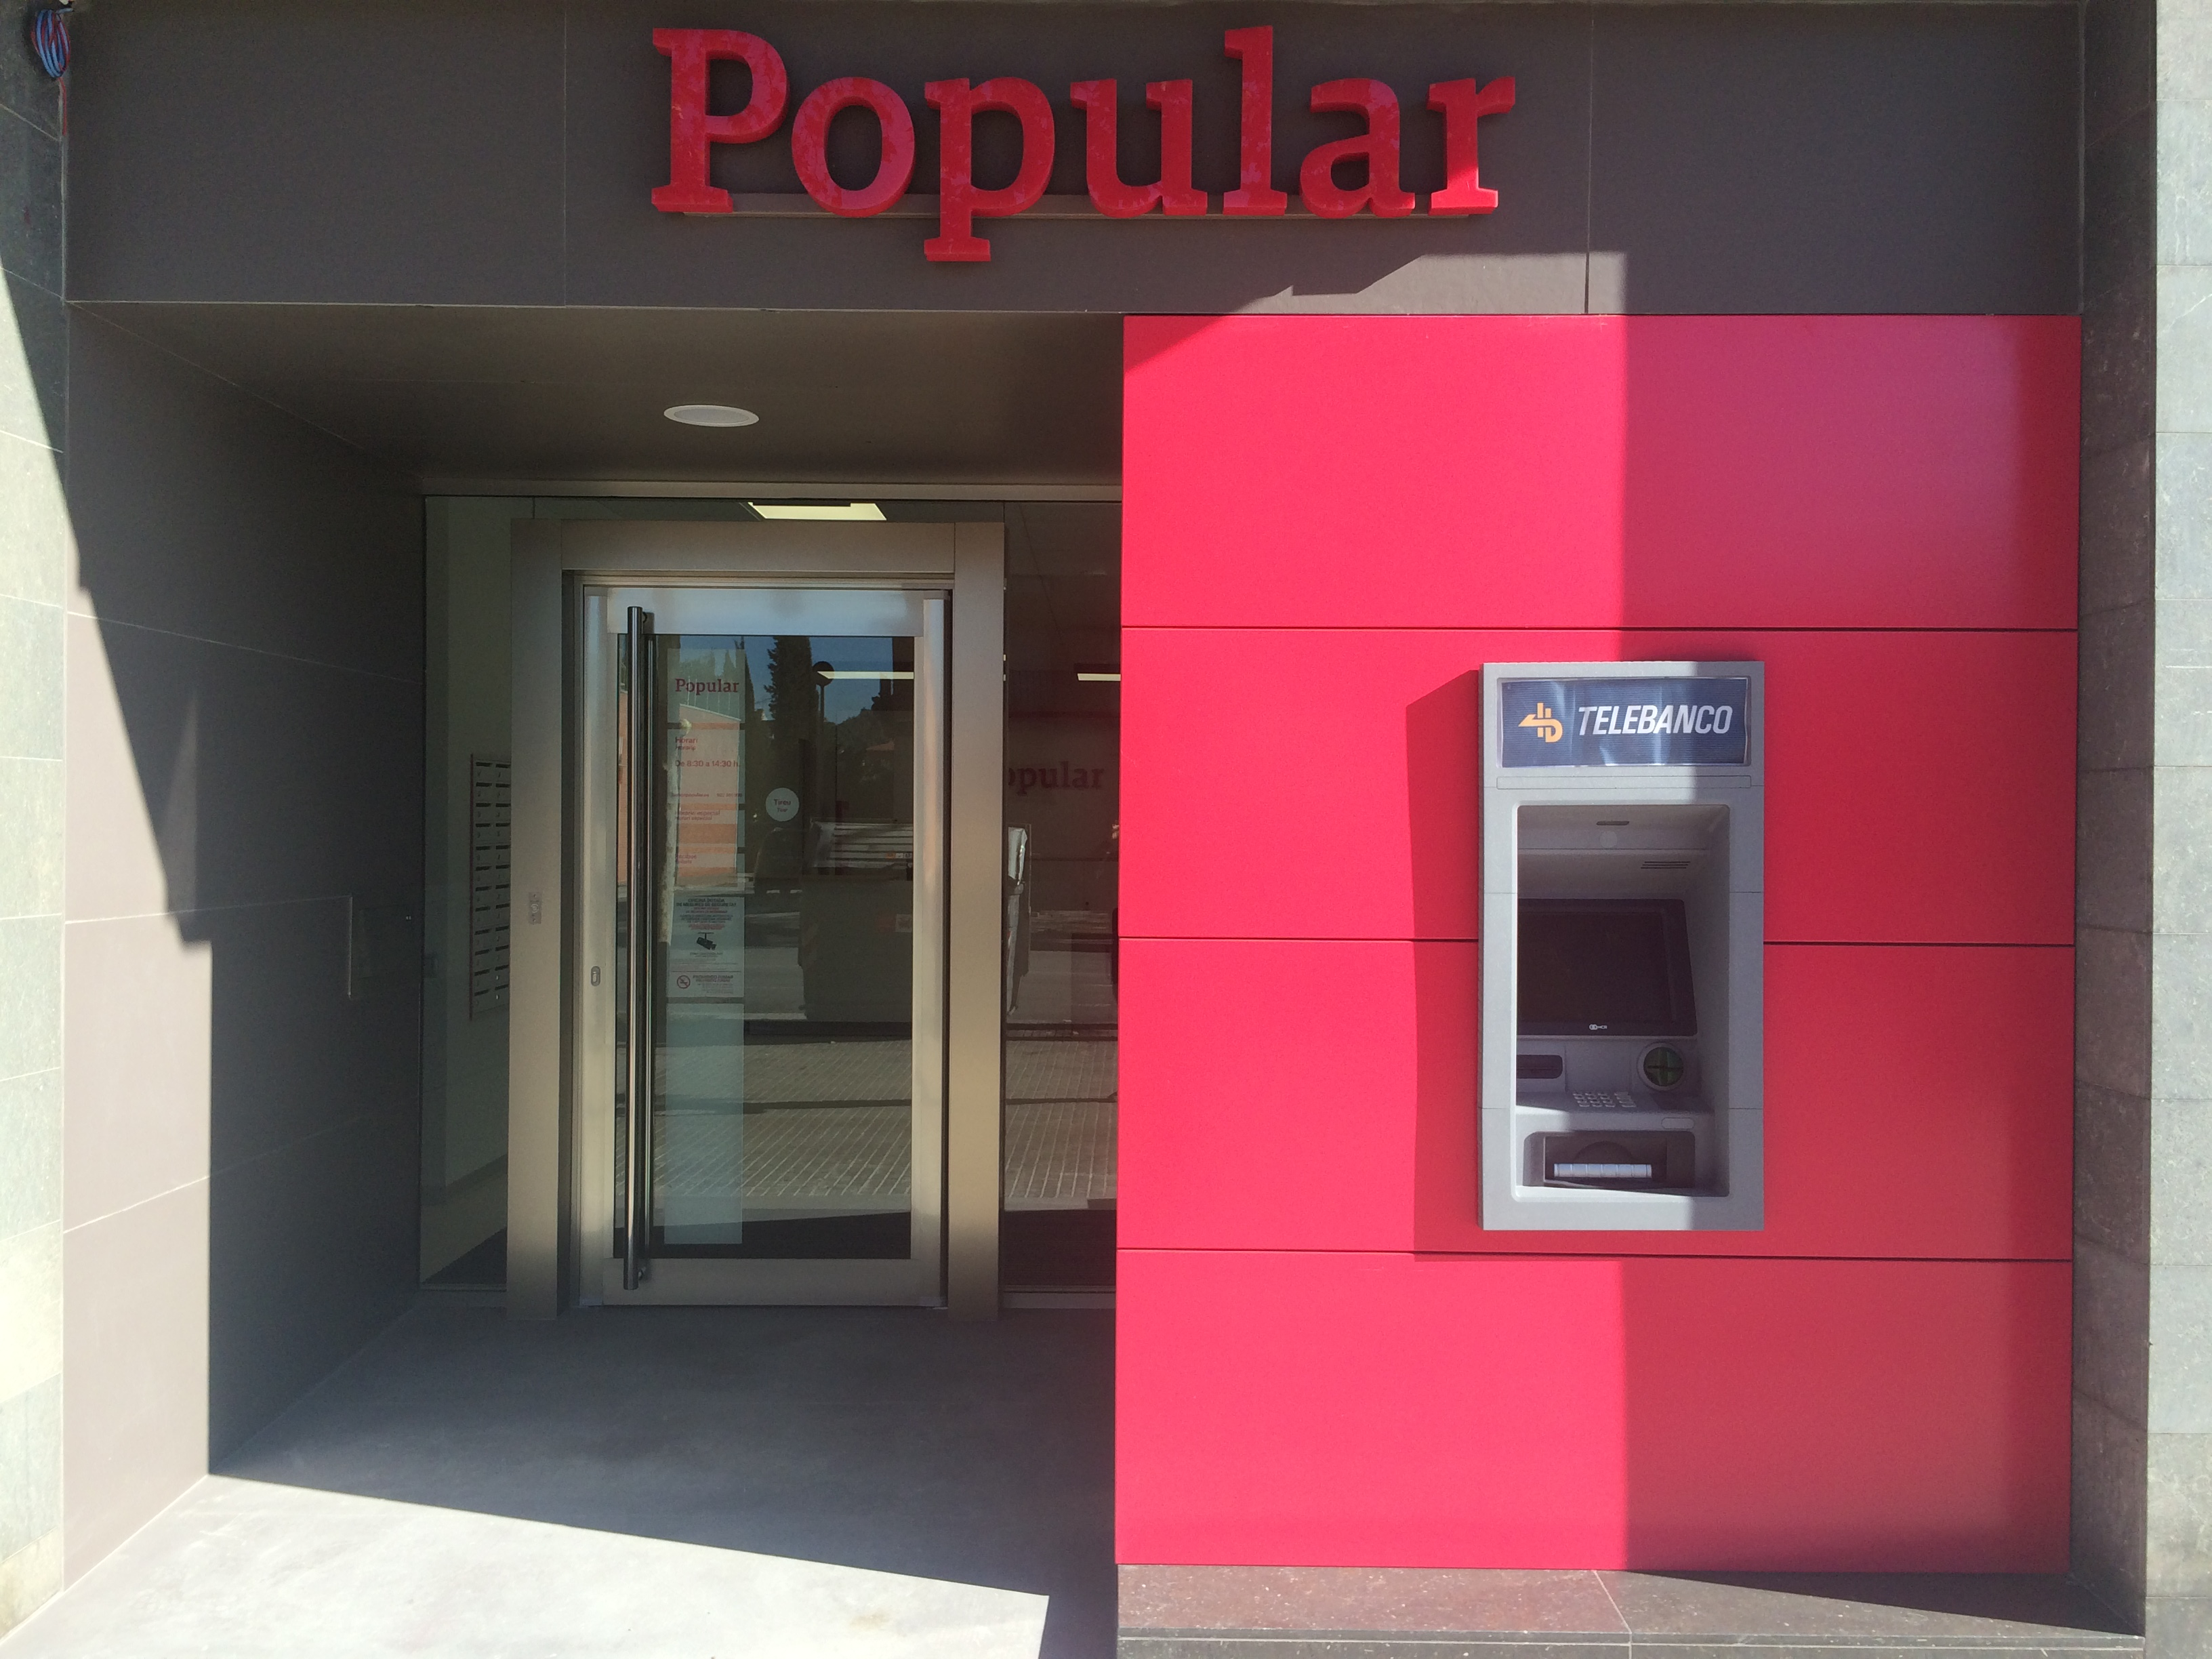 Blog dosaplicacions for Oficinas banco popular madrid